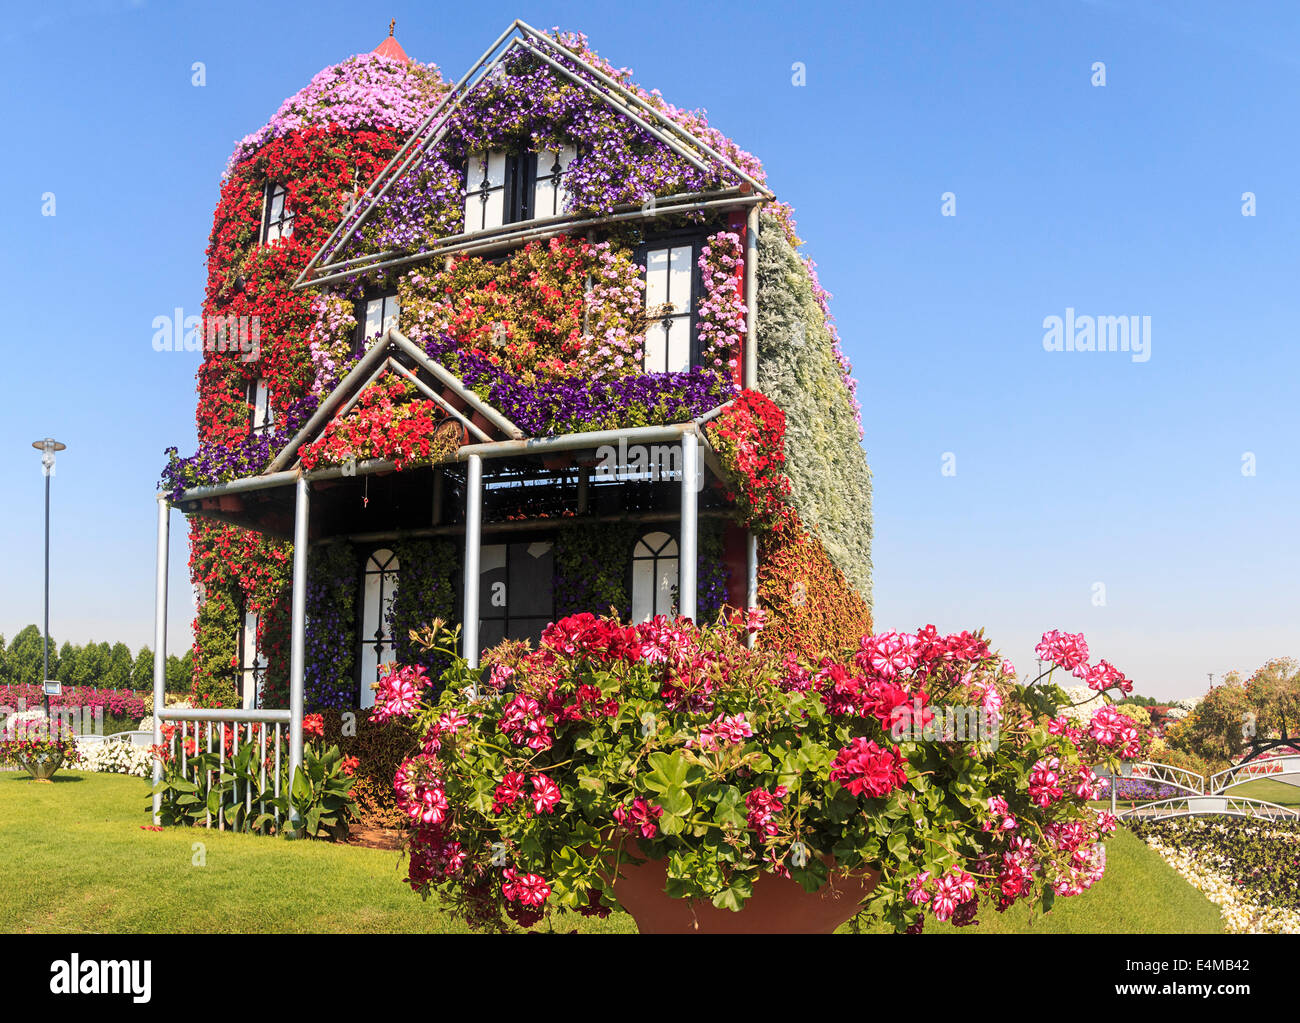 House covered in flowers at dubai 39 s miracle garden for Casa de jardin mobile home park